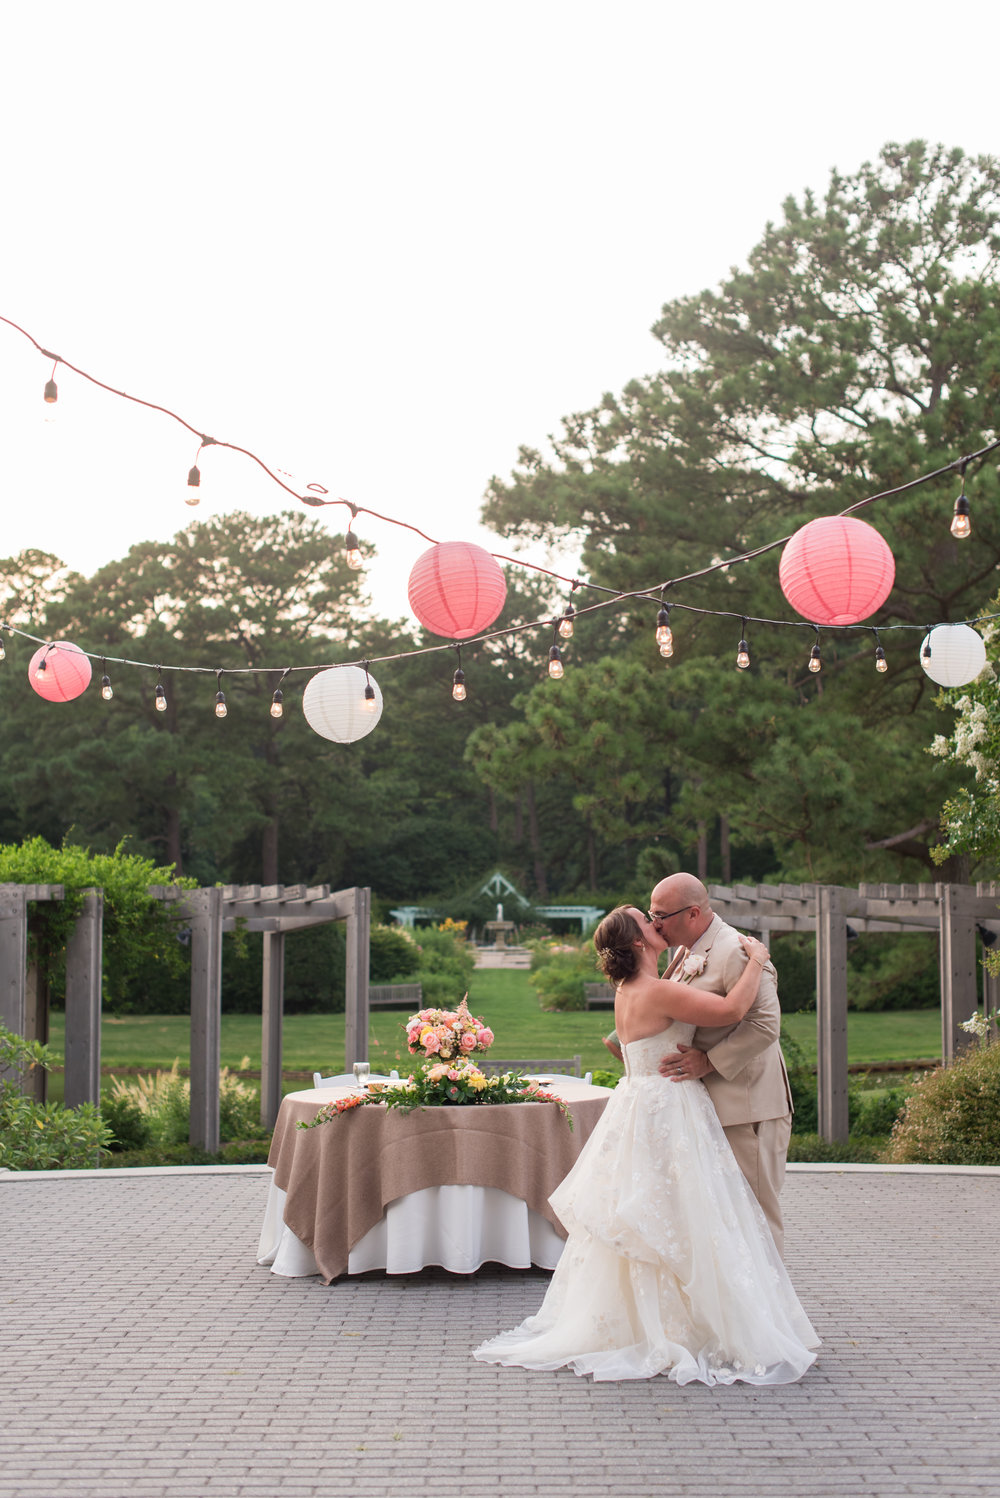 Jamie and Bert shared their first dance under twinkle lights and lanterns. Despite looming rain, Jamie insisted on keeping her reception outside, as planned. Best decision ever! This moment was perfection!  Photo: Caitlin Gerres Photography